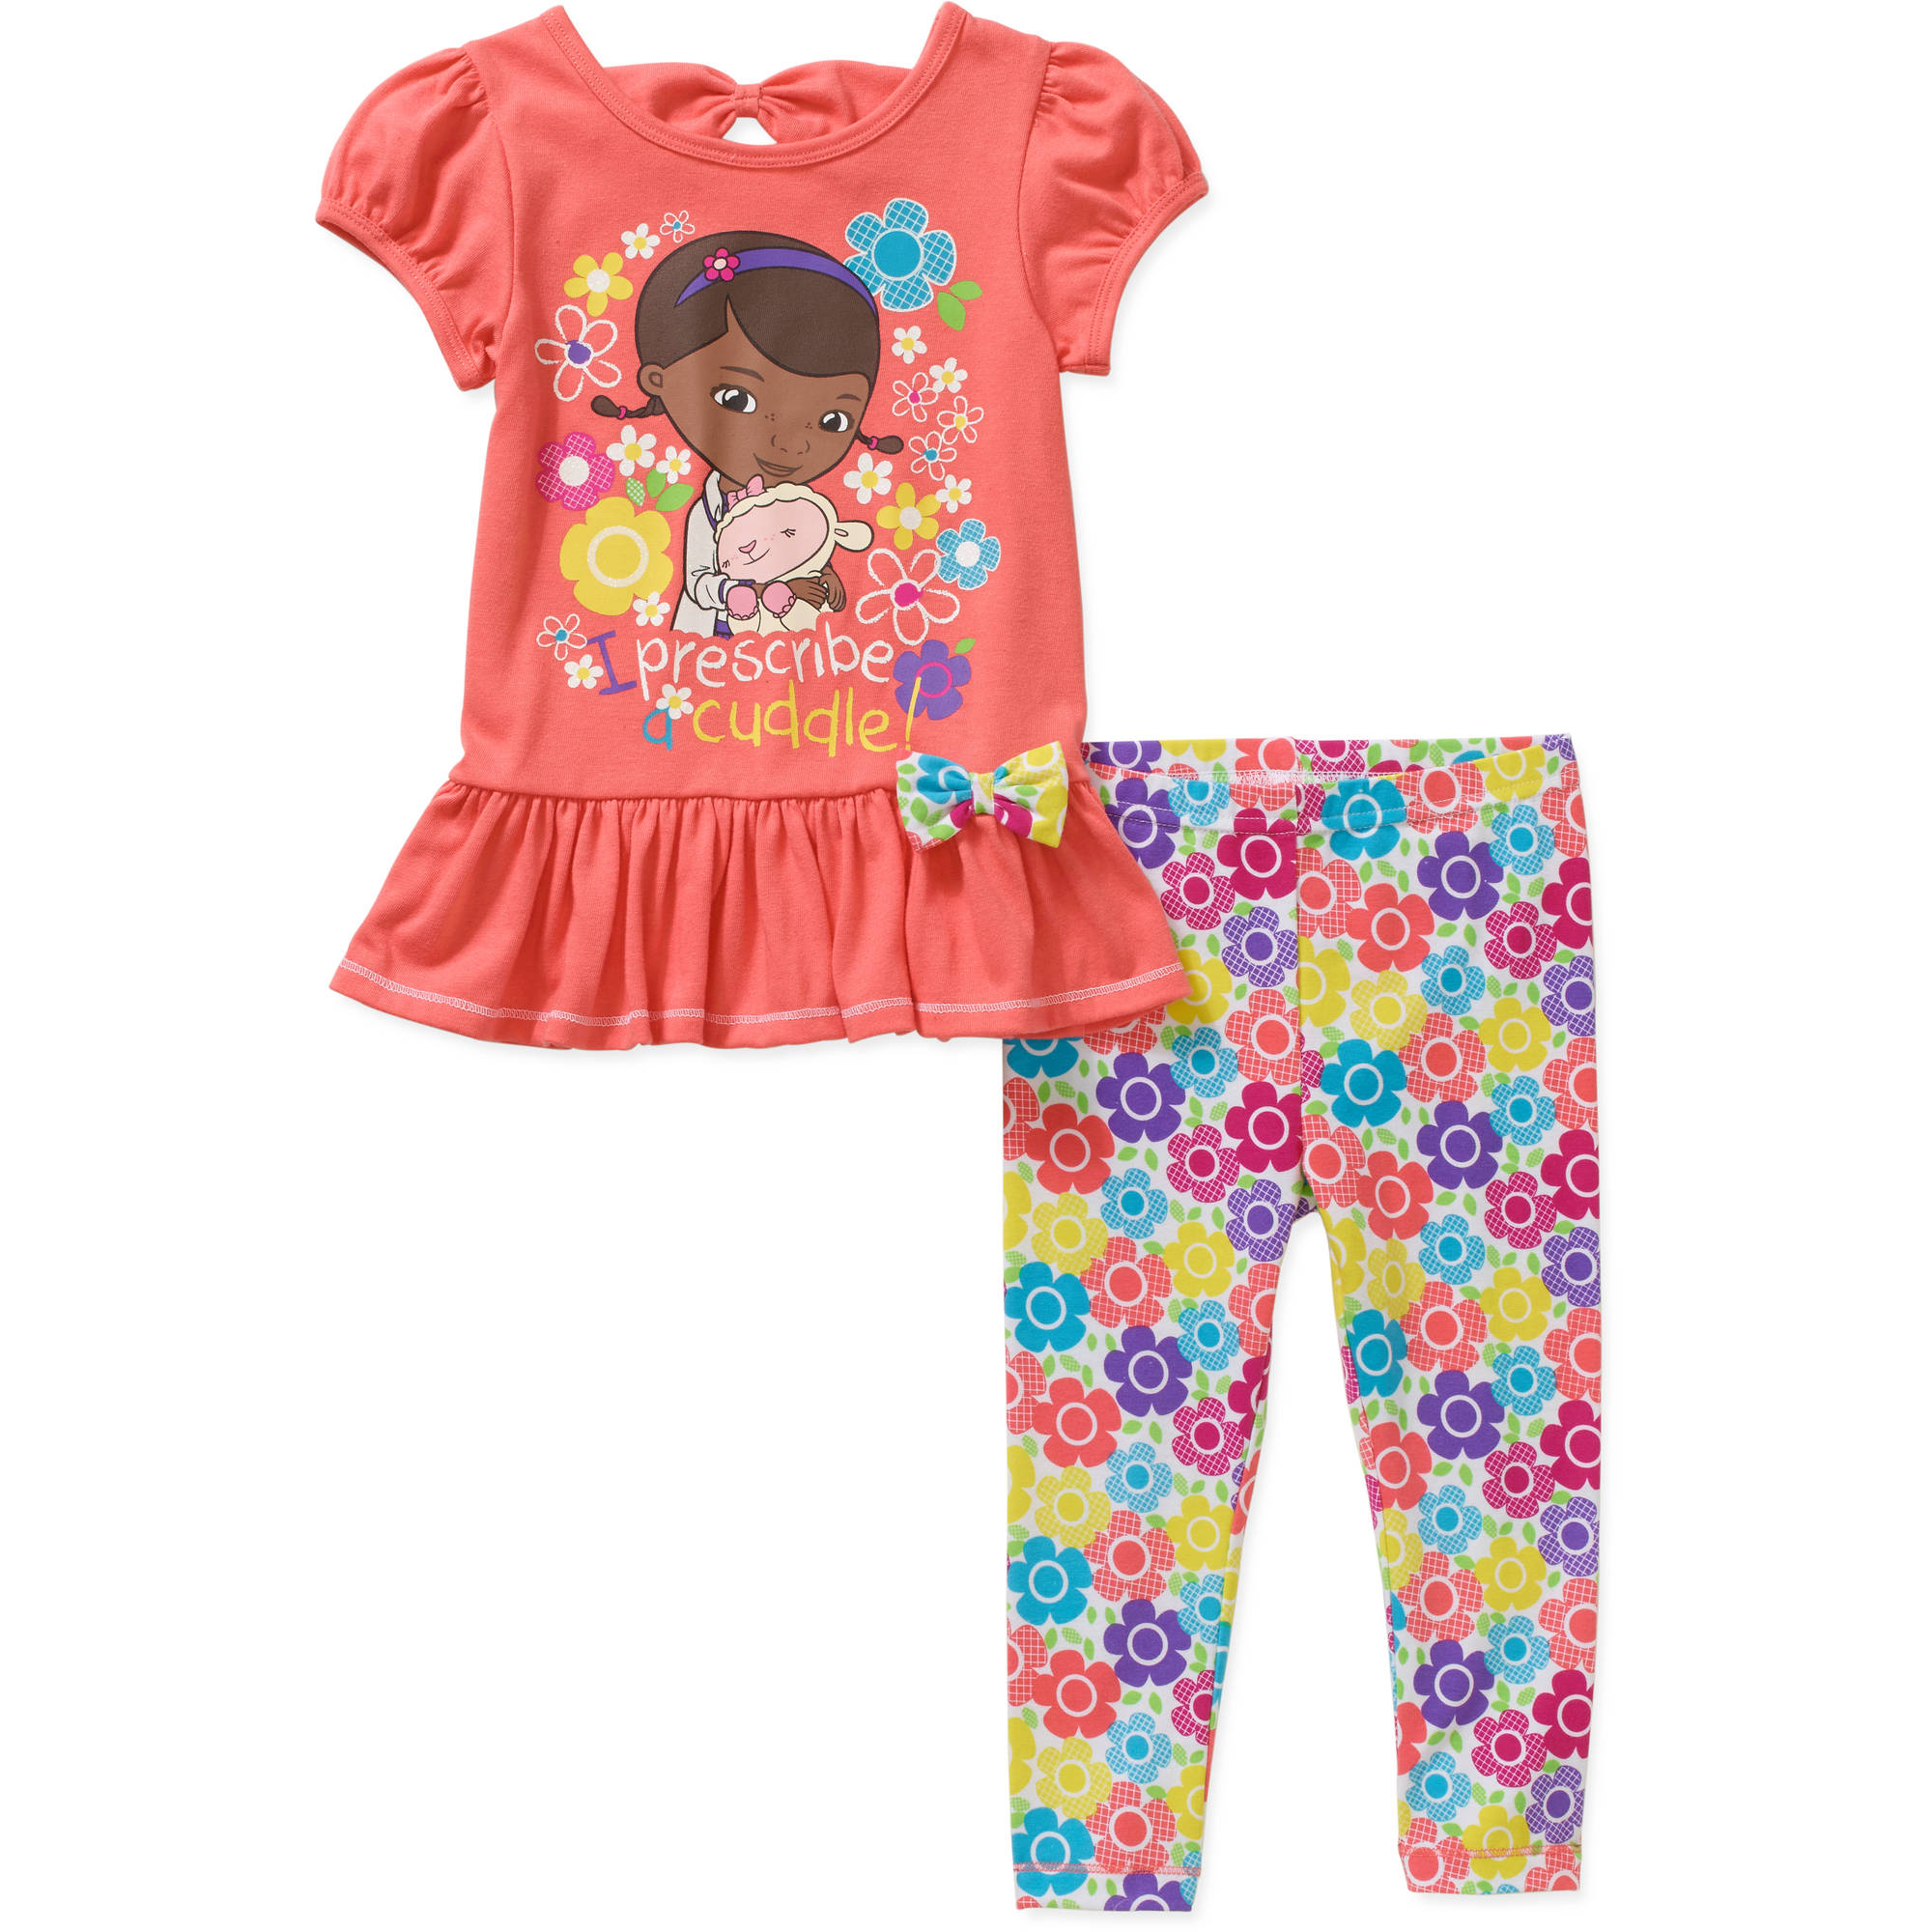 Doc McStuffins Toddler Girls' Peplum Tunic and Leggings Outfit Set ...